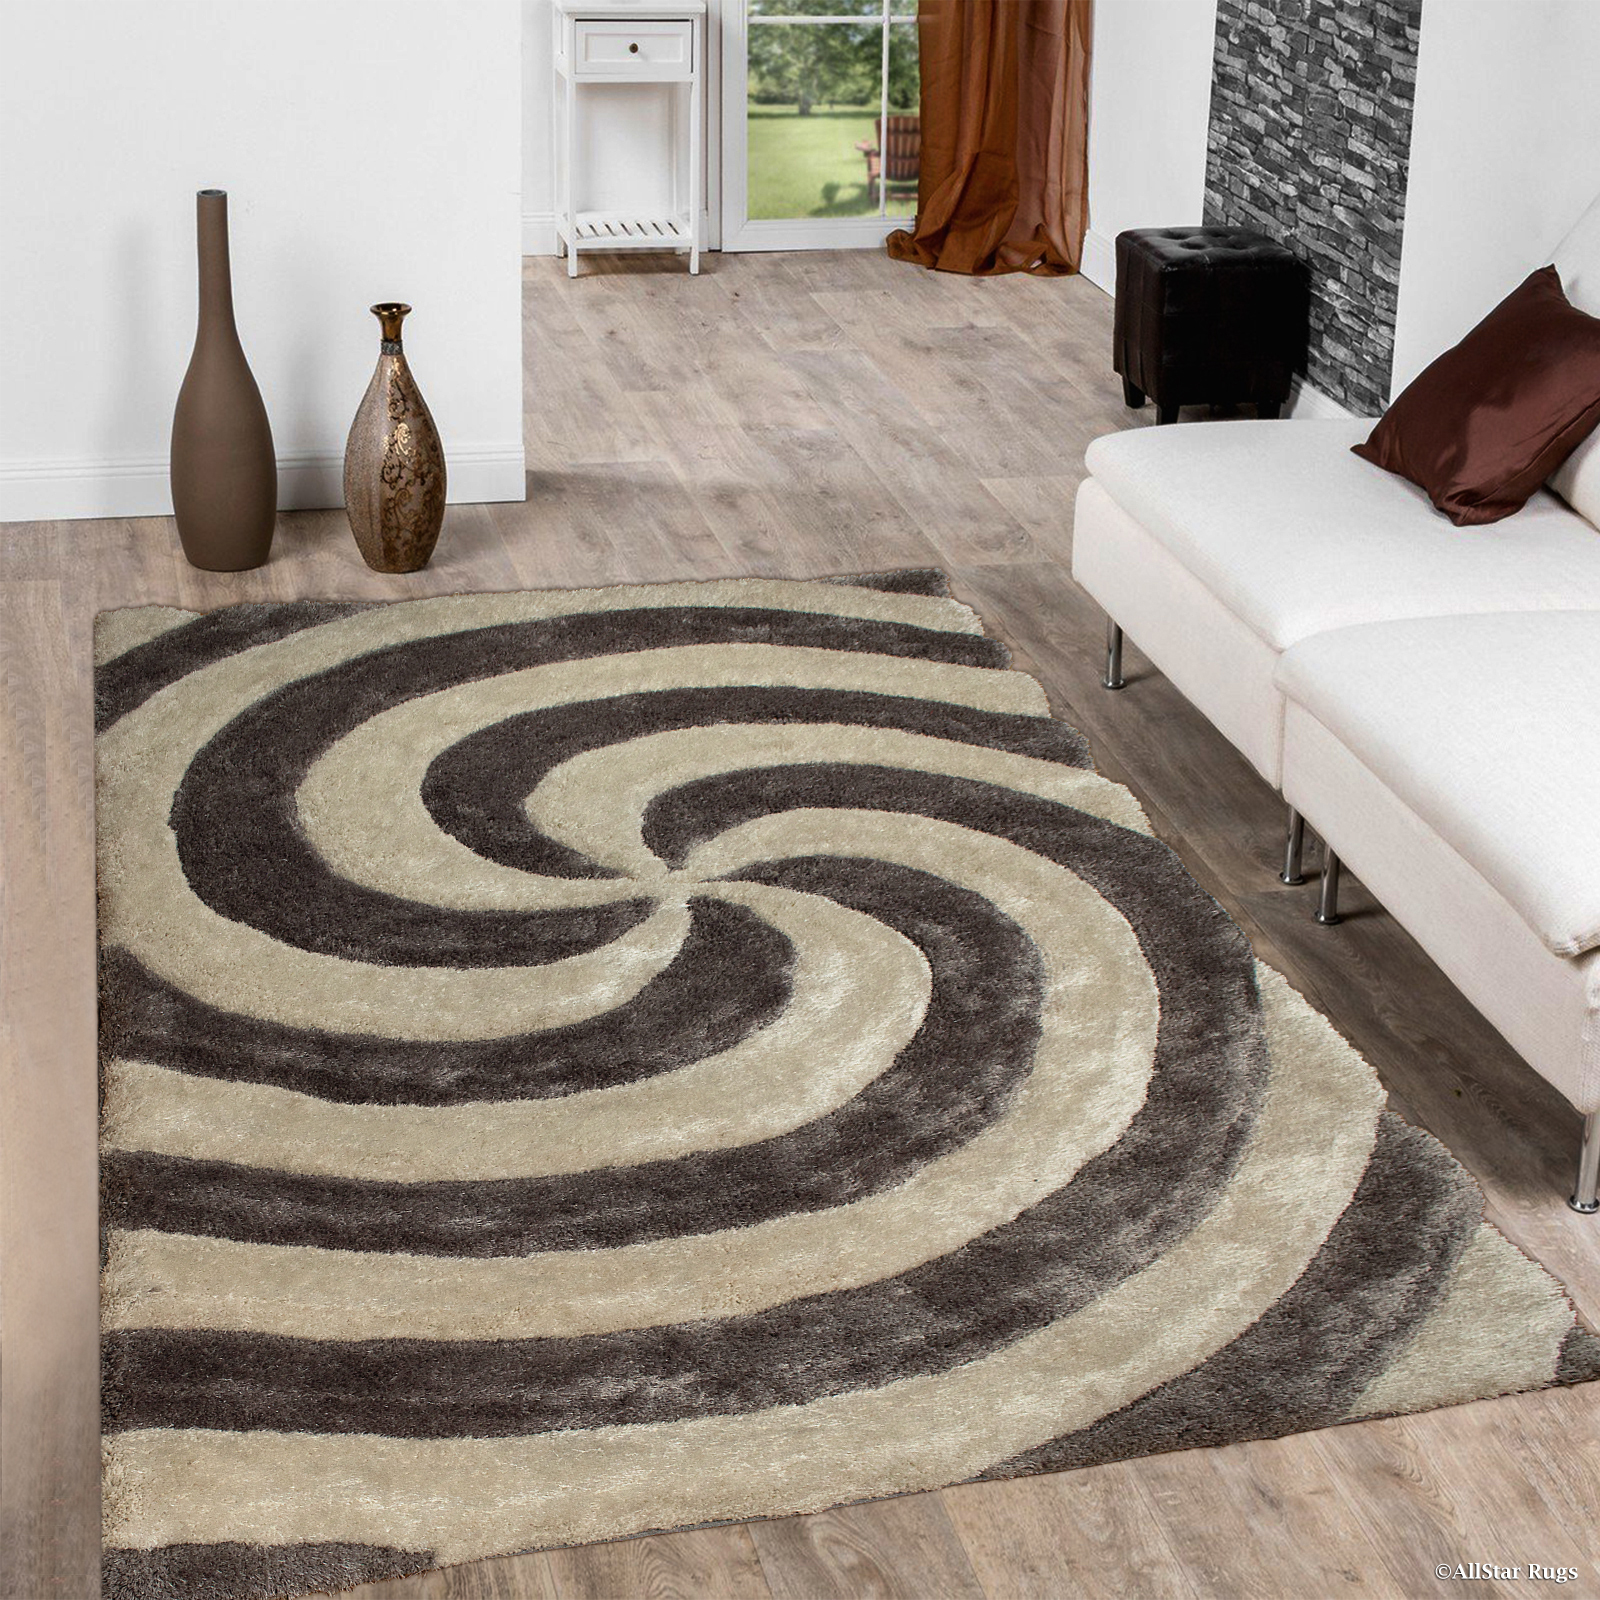 Allstar Silver Shaggy Area Rug with 3D Spiral Design. Contemporary Formal Casual Hand Tufted (5' x 7')